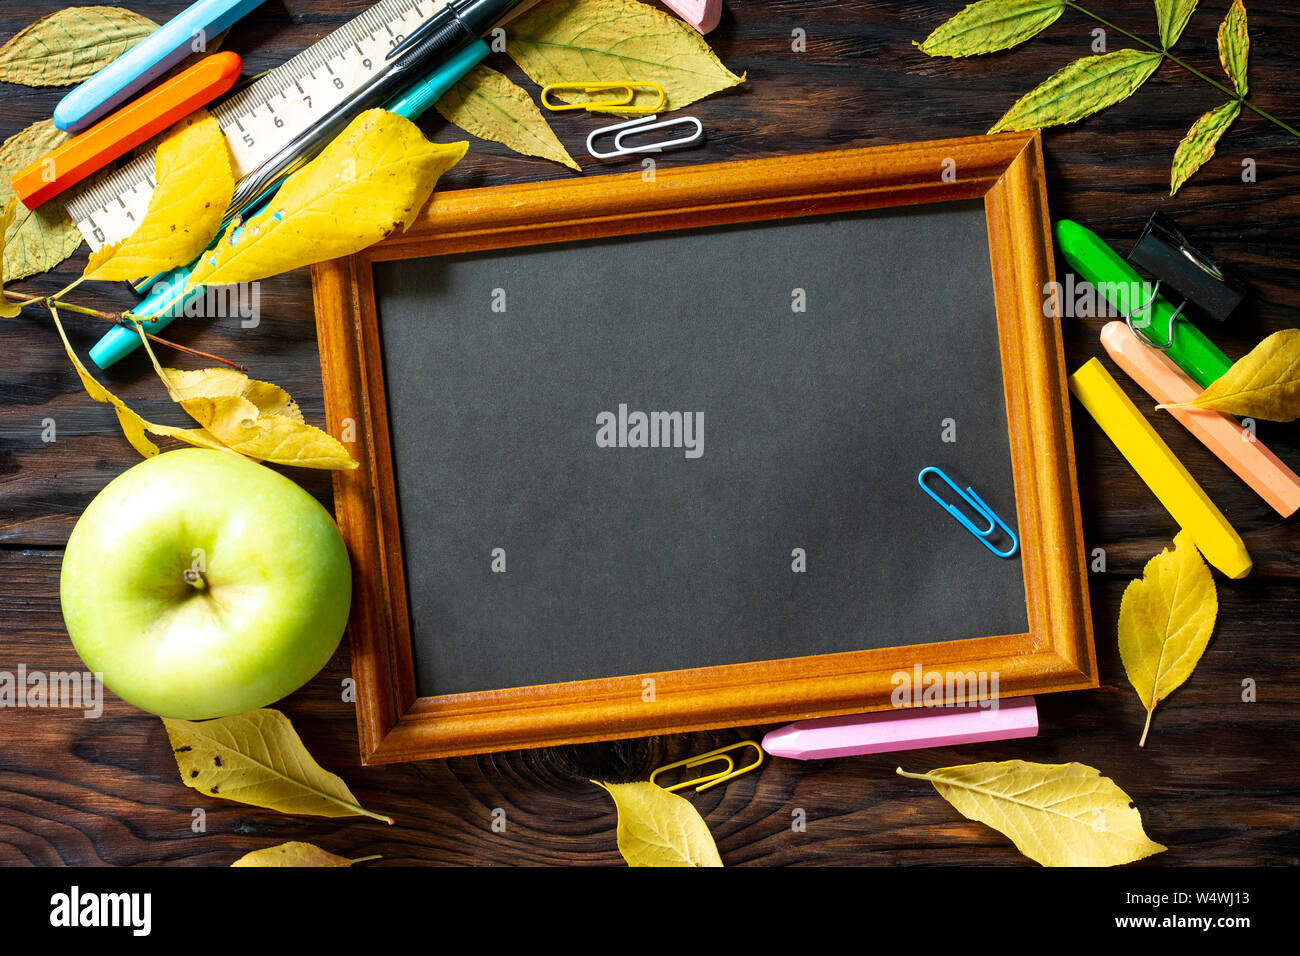 Frame Background Back to school. Table with autumn leaves, note pad, apple  and school supplies. Free space for your text. Stock Photo